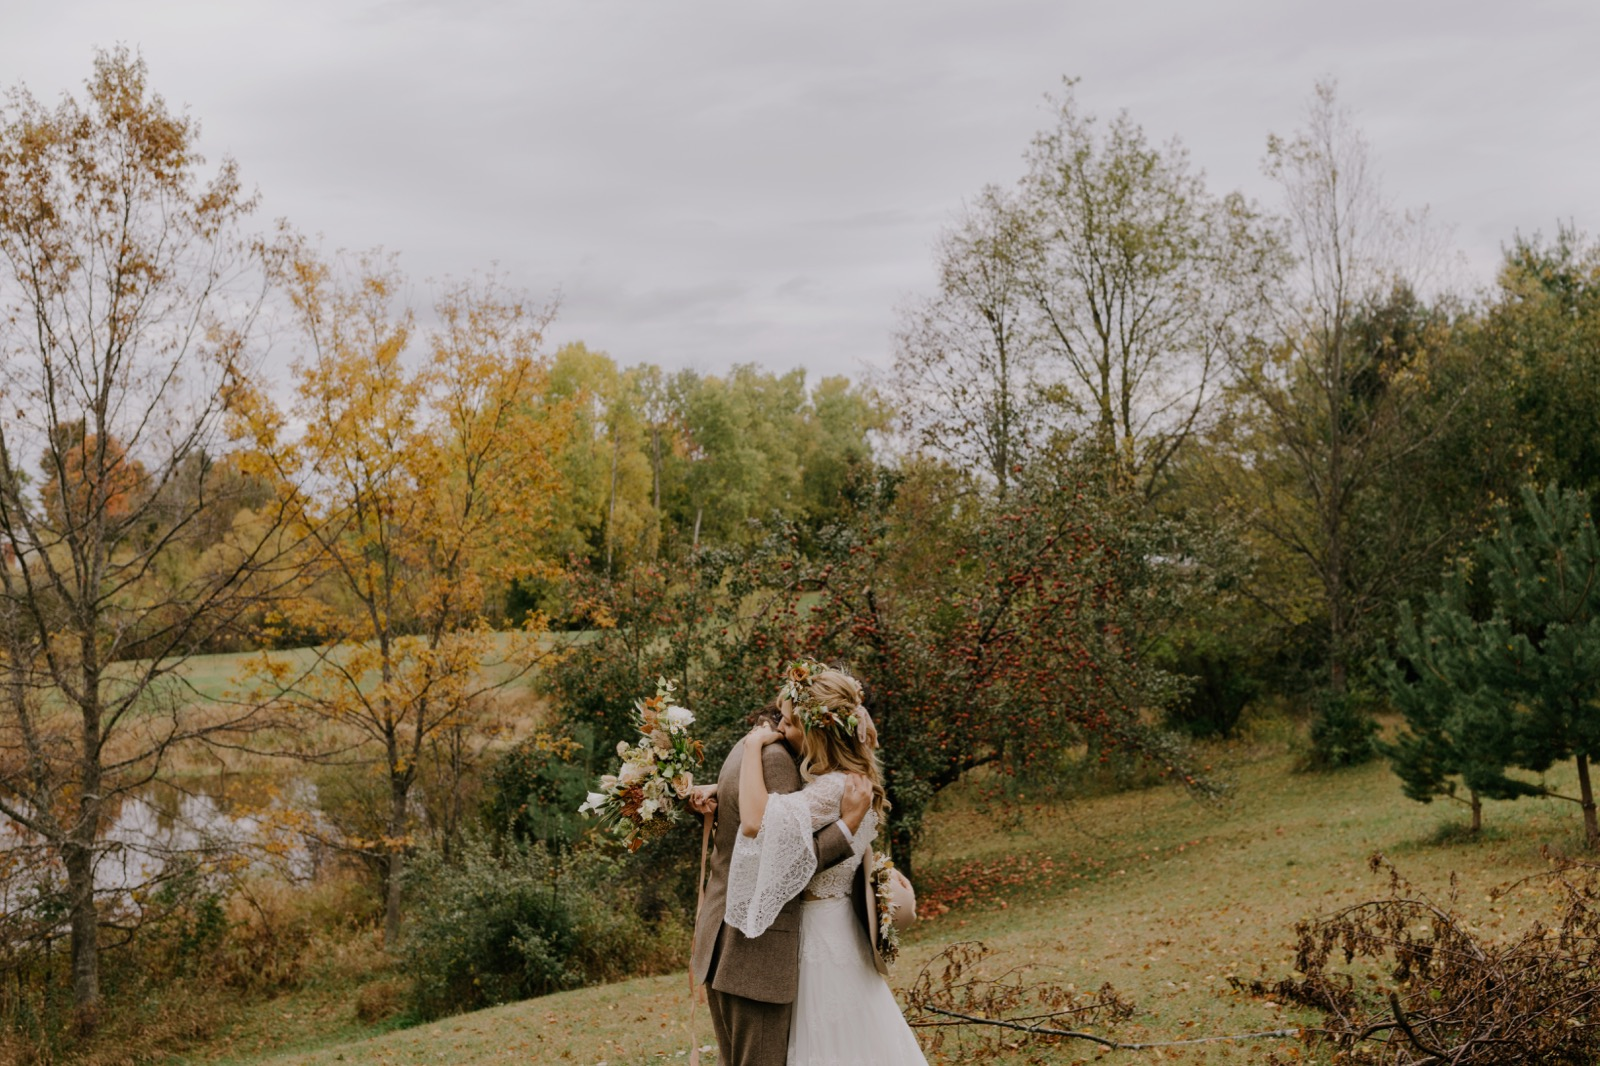 119_Jessy & Perry Wedding 0545_autumn_cinematic_outdoor_family_fall_michigan_barn_intimate_emotional_wedding